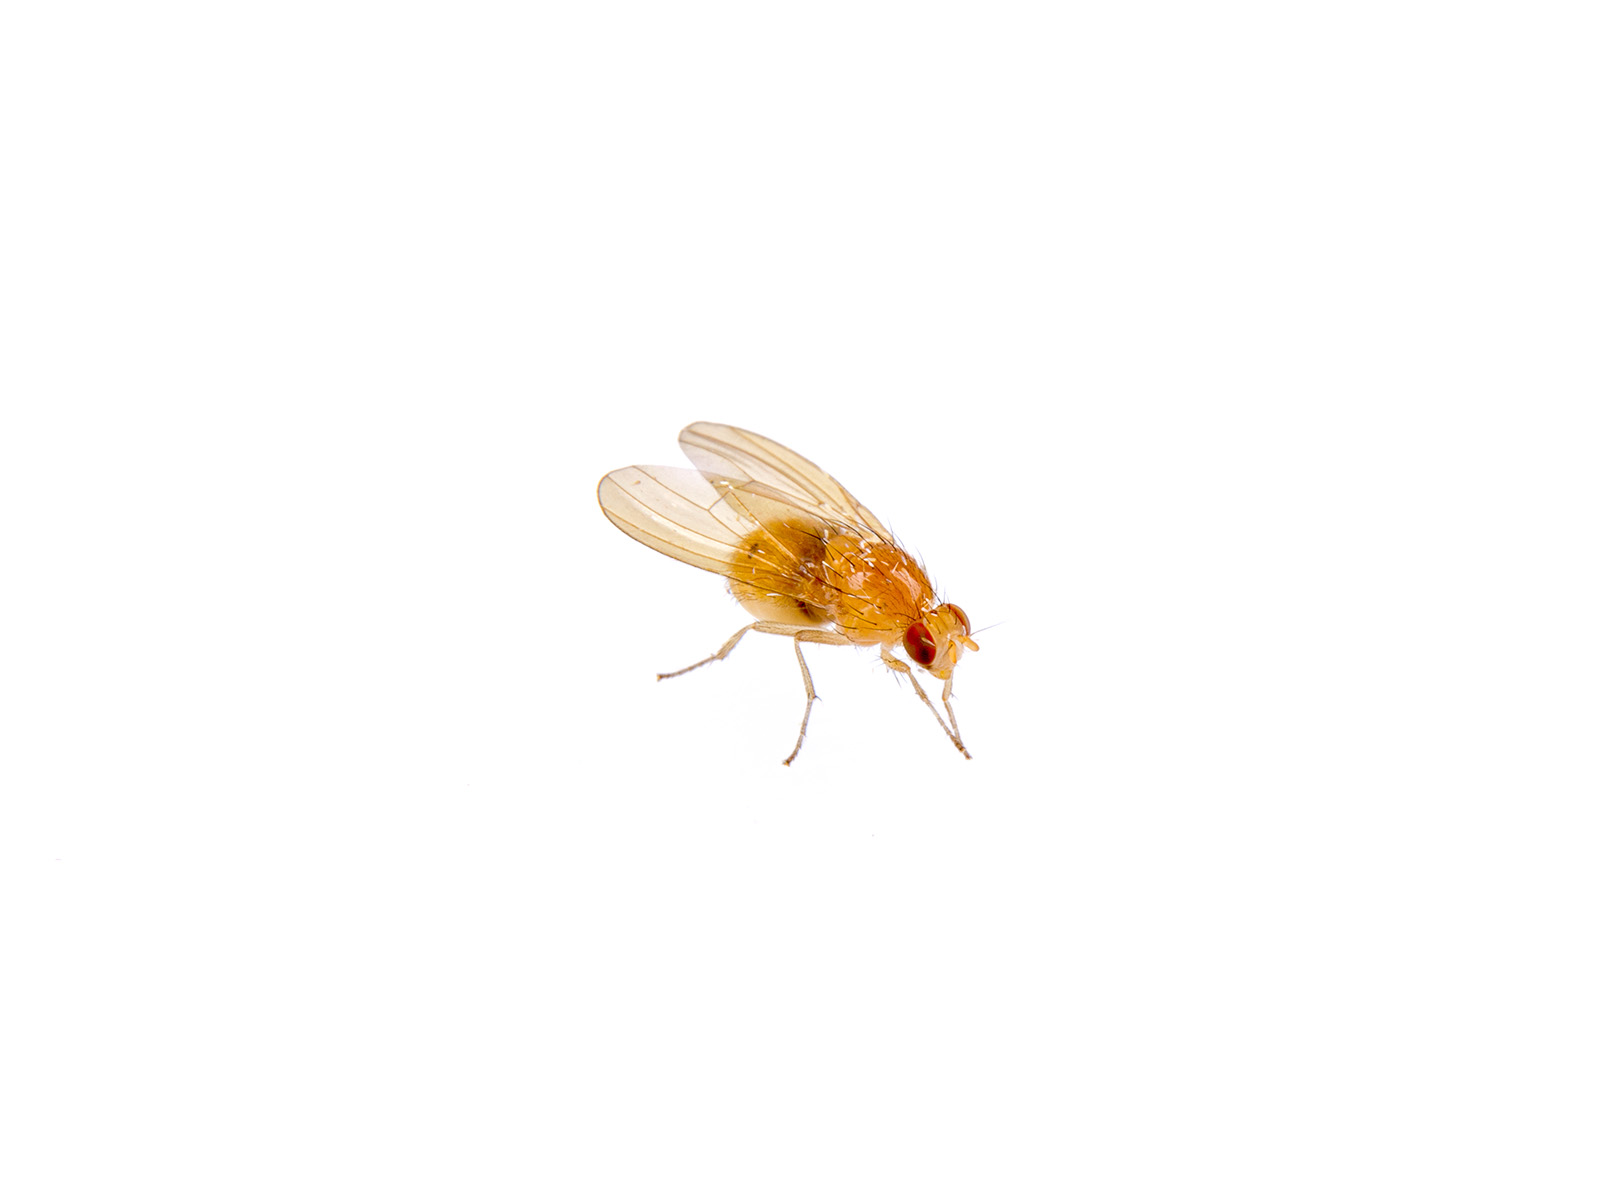 What Are These Small Brown Bugs in My House? - Masterguard ...